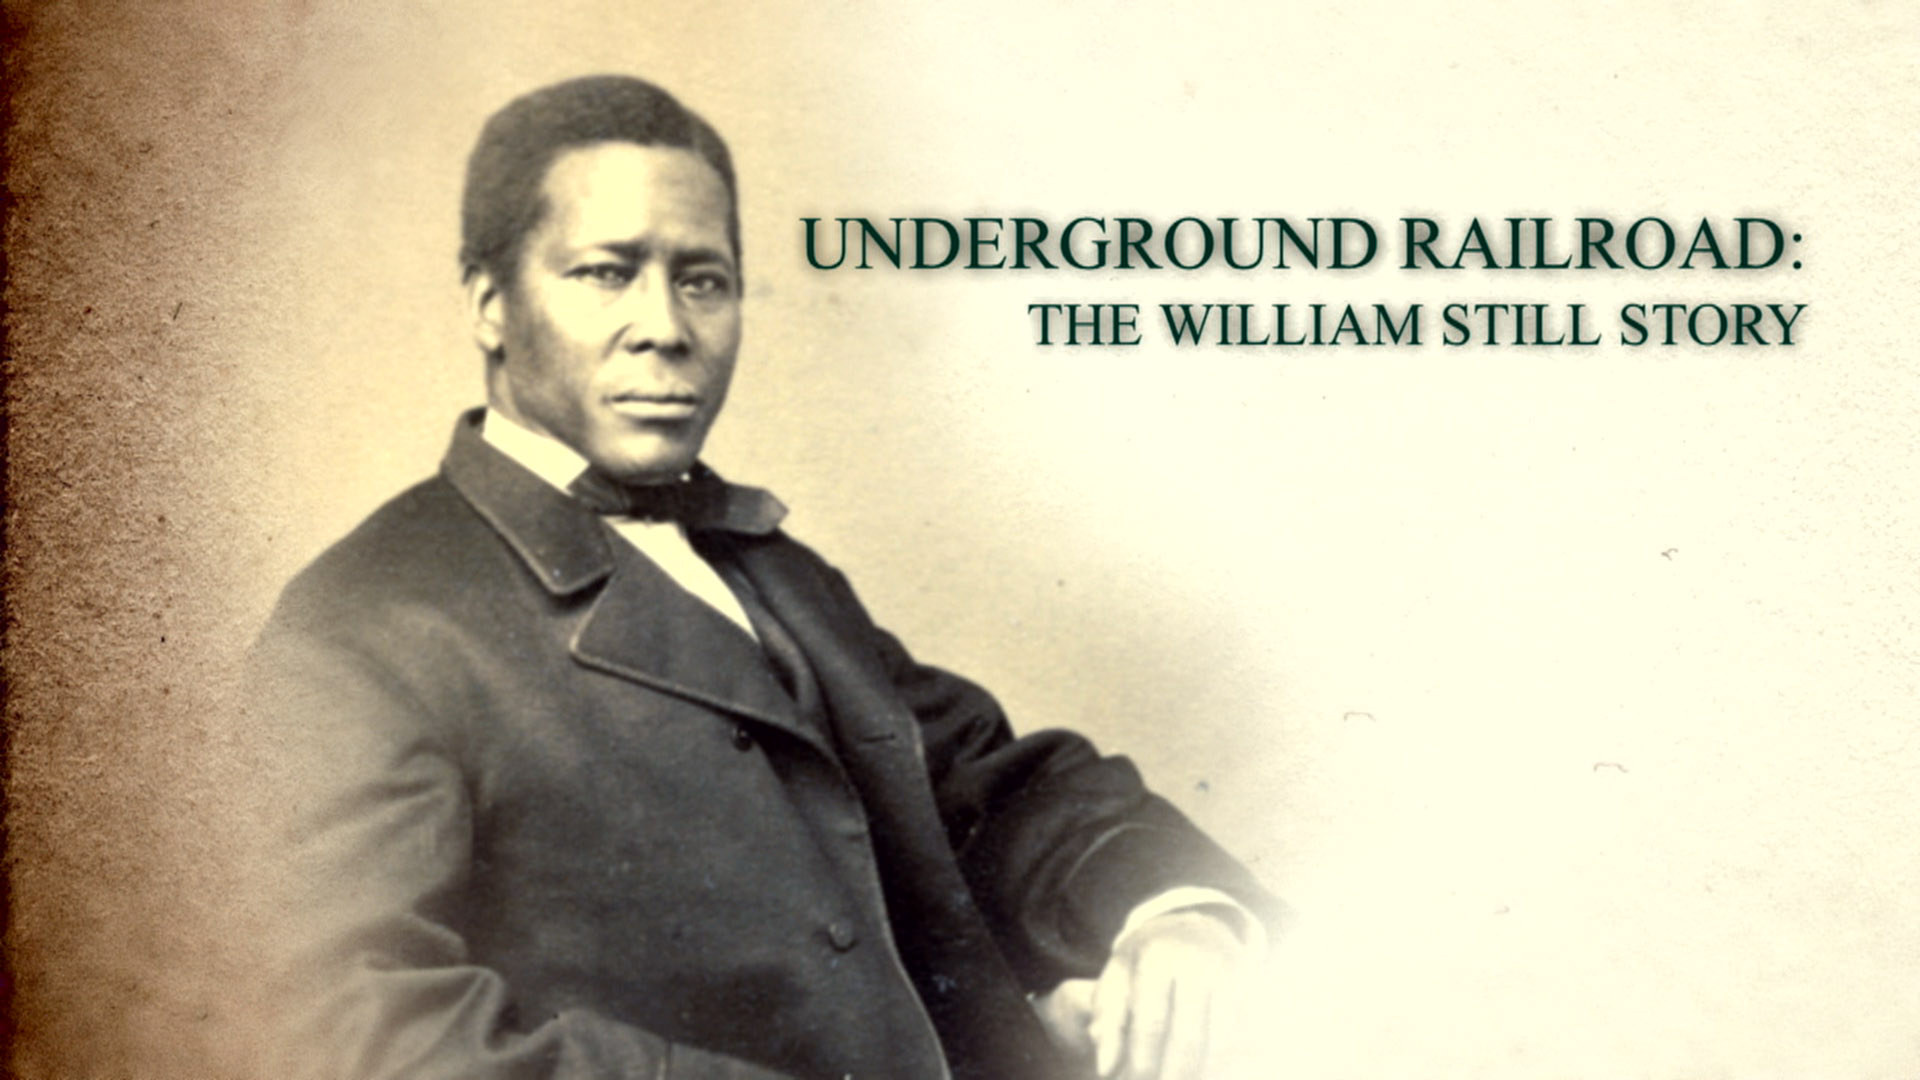 William Still's Place in History